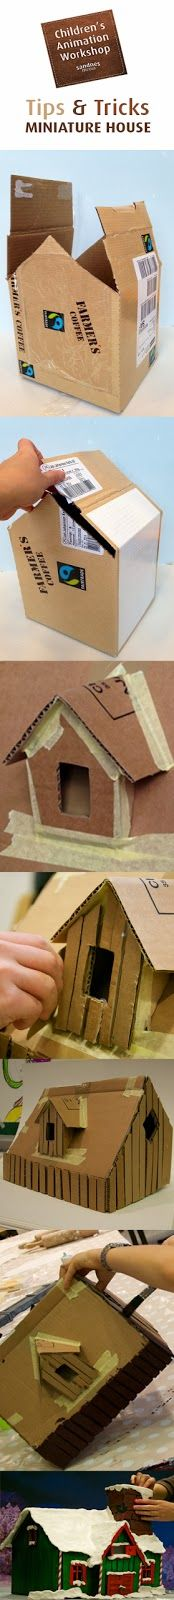 How to make a miniature house.